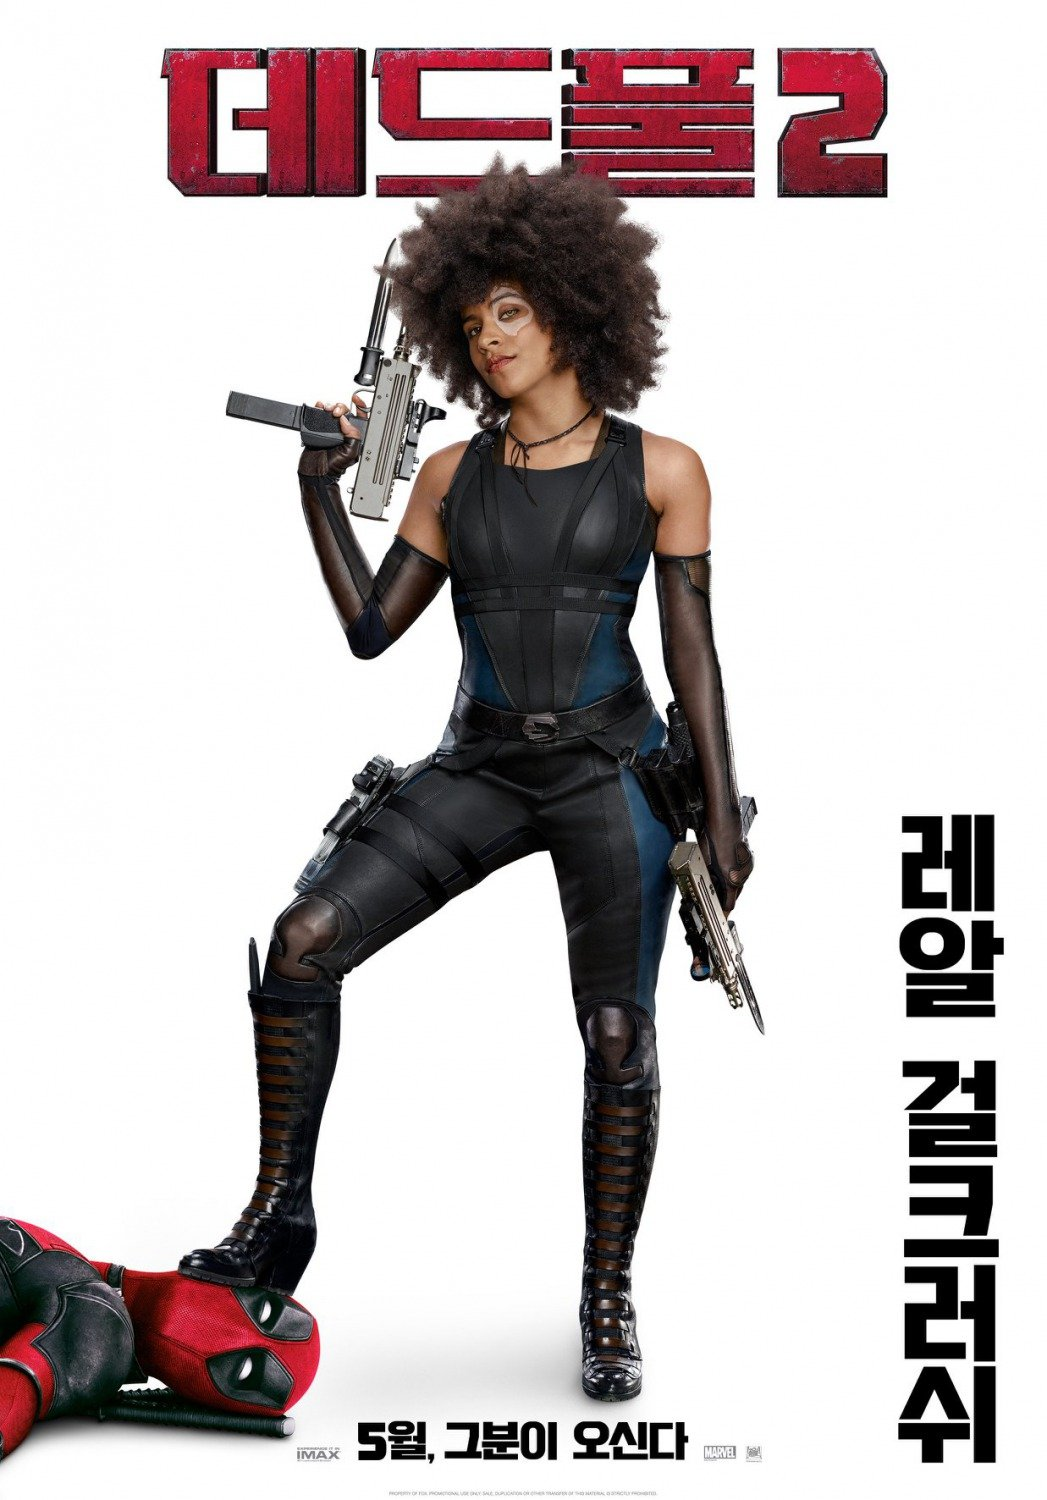 Poster du film Deadpool 2 avec Deadpool (Ryan Reynolds) au pied de Domino (Zazie Beetz)